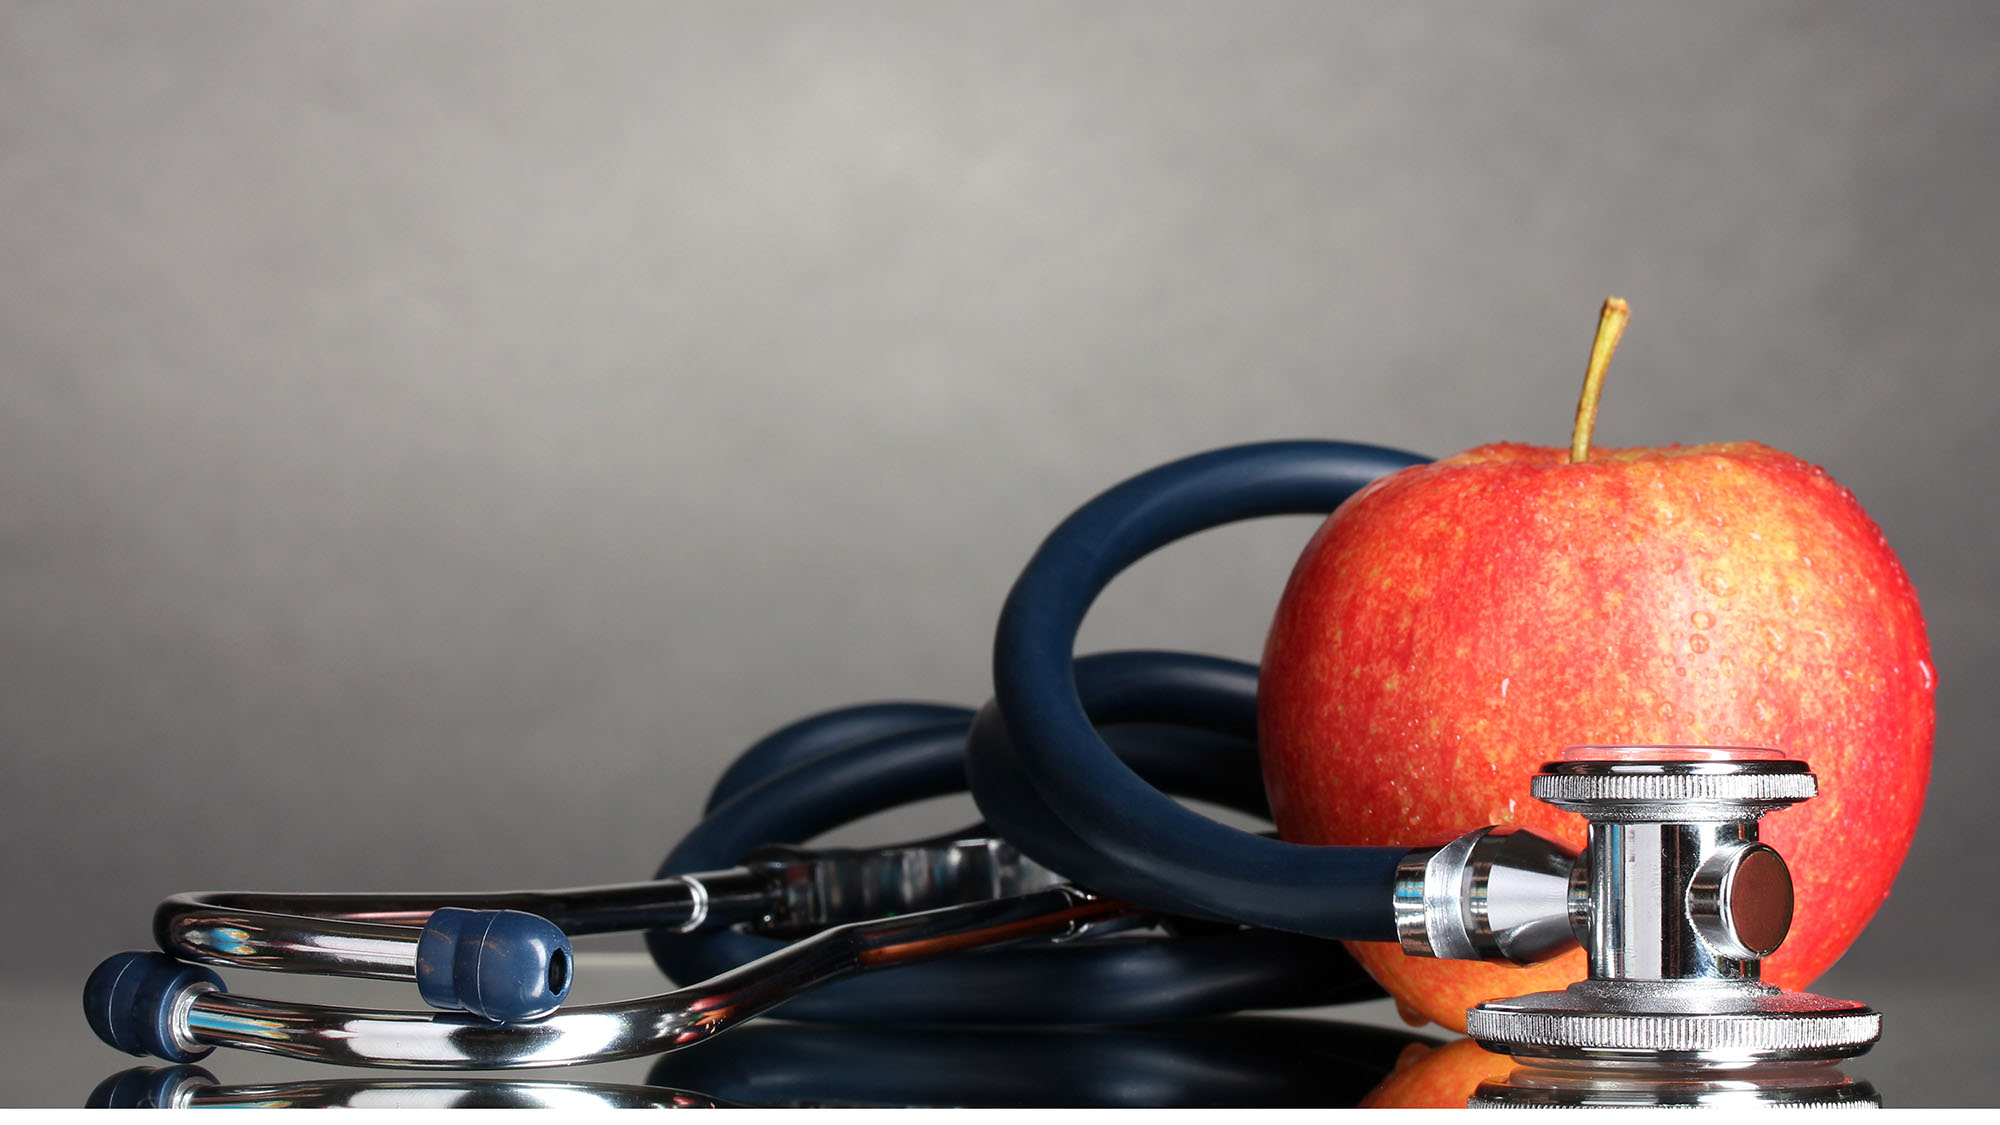 Does an apple a day actually keep the doctor away?